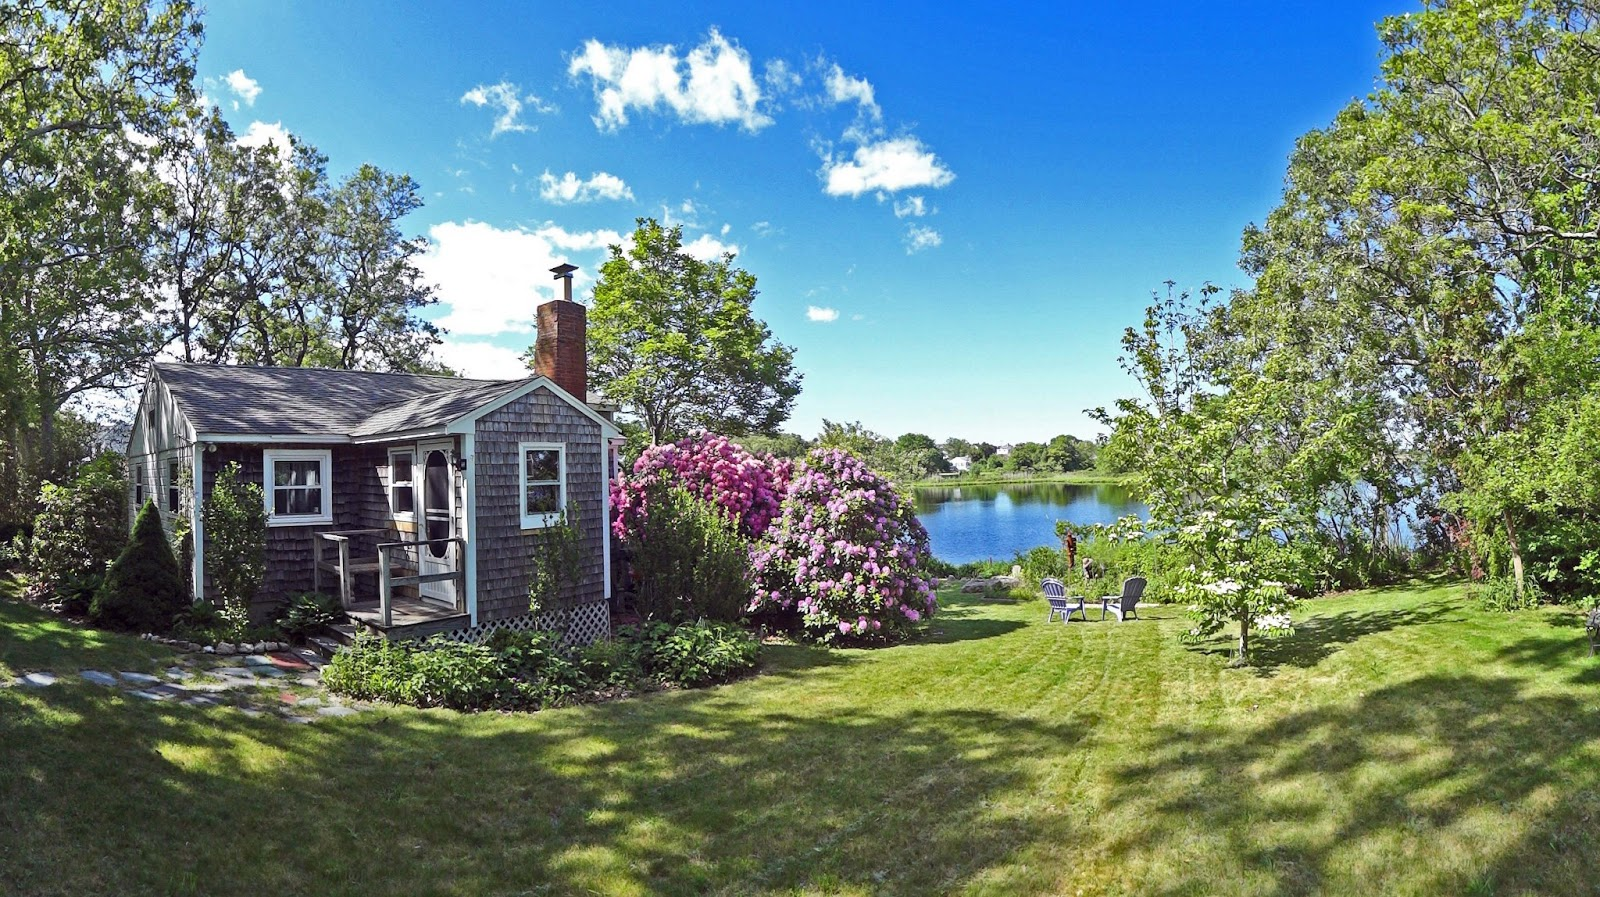 joe u0026 39 s retirement blog  a new england cottage in spring  bartlett pond  manomet  plymouth